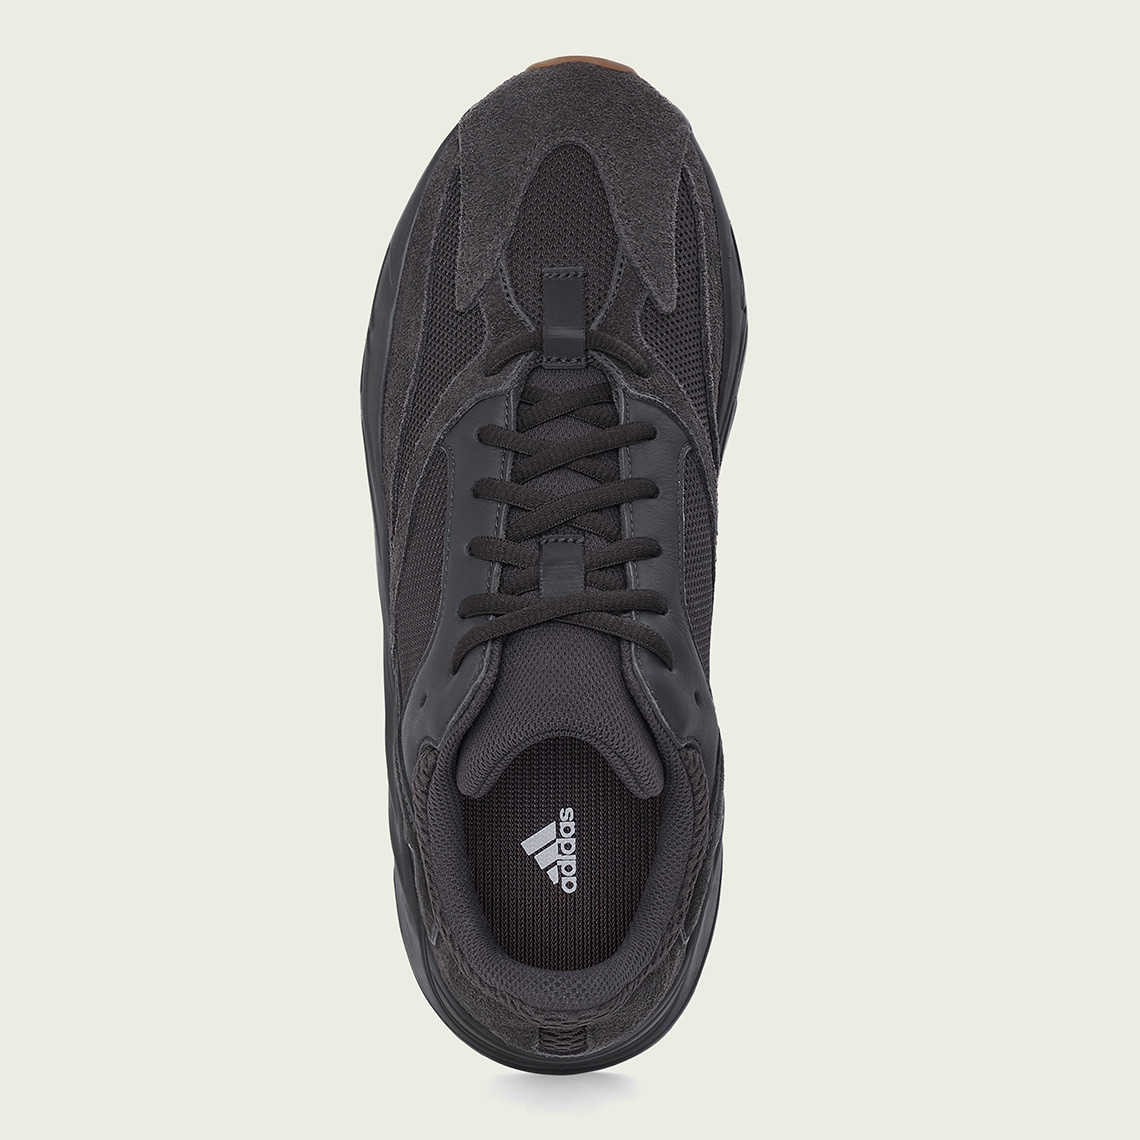 hot sale online 58d1b adc54 adidas Yeezy 700 Utility Black FV5304 Release Date ...